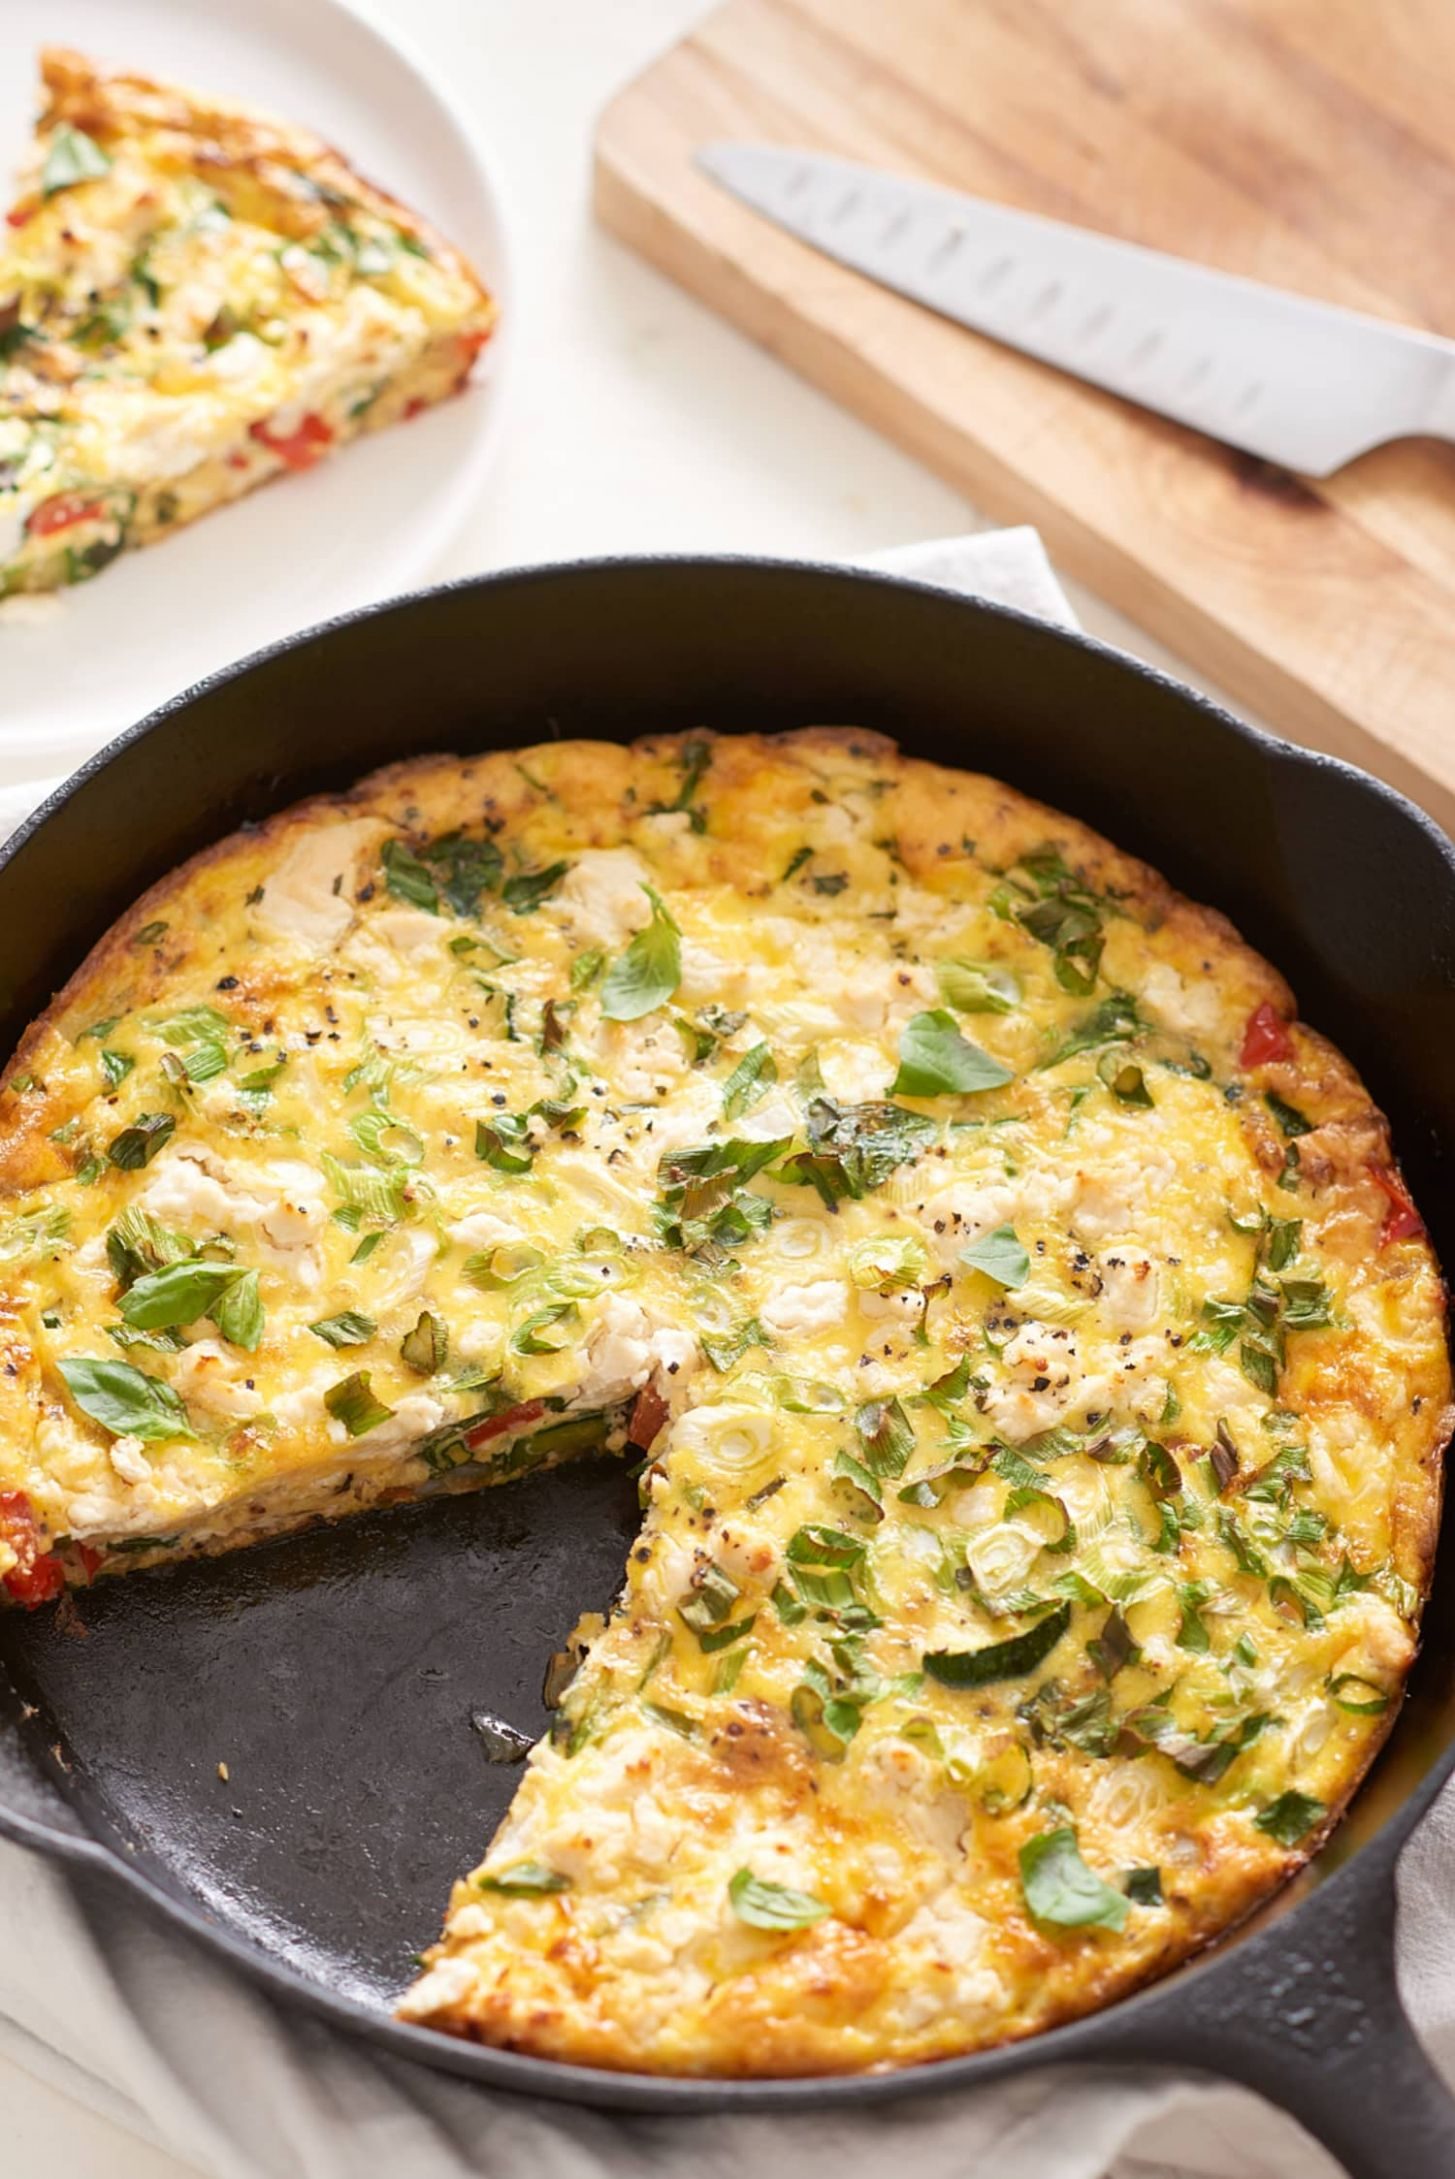 The Easiest Cheese and Vegetable Frittata - Vegetable Frittata Recipe